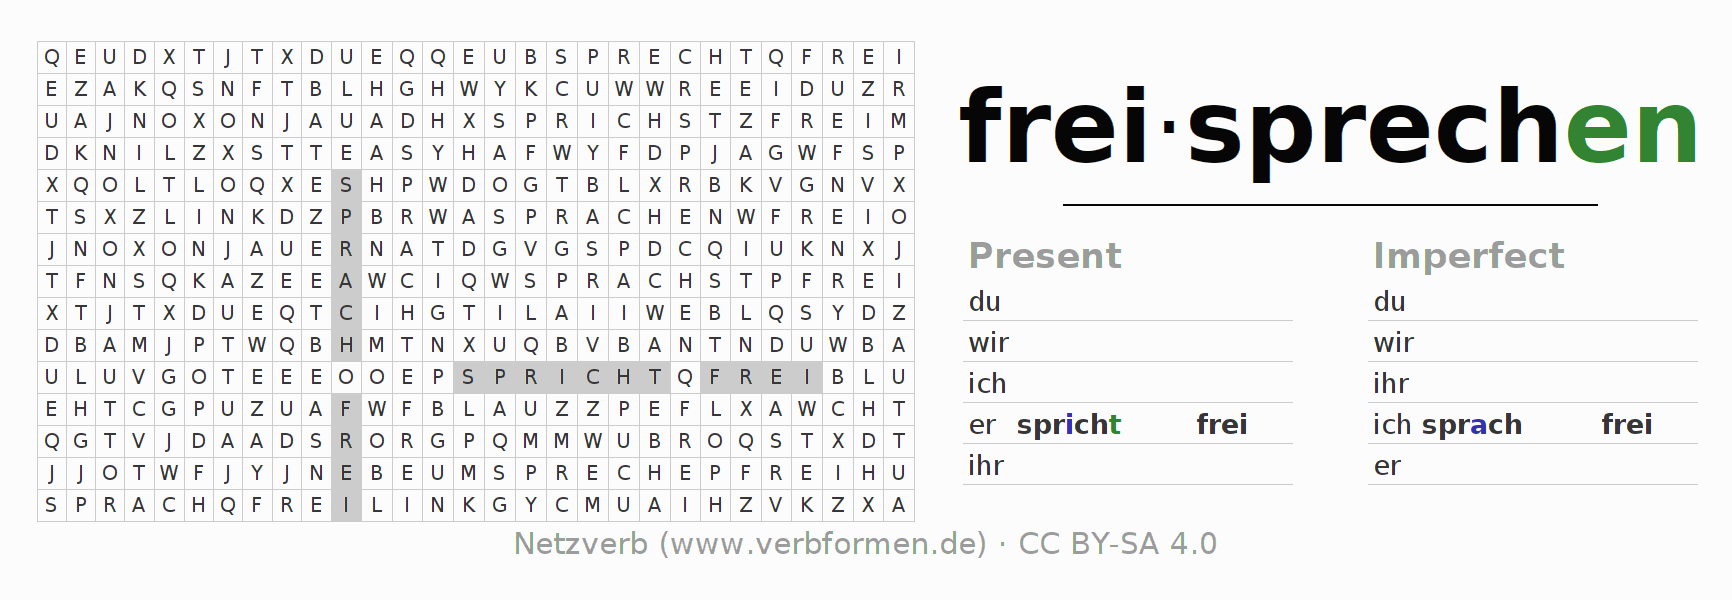 worksheet Pe Worksheets worksheets verb freisprechen exercises for conjugation of word search puzzle the freisprechen